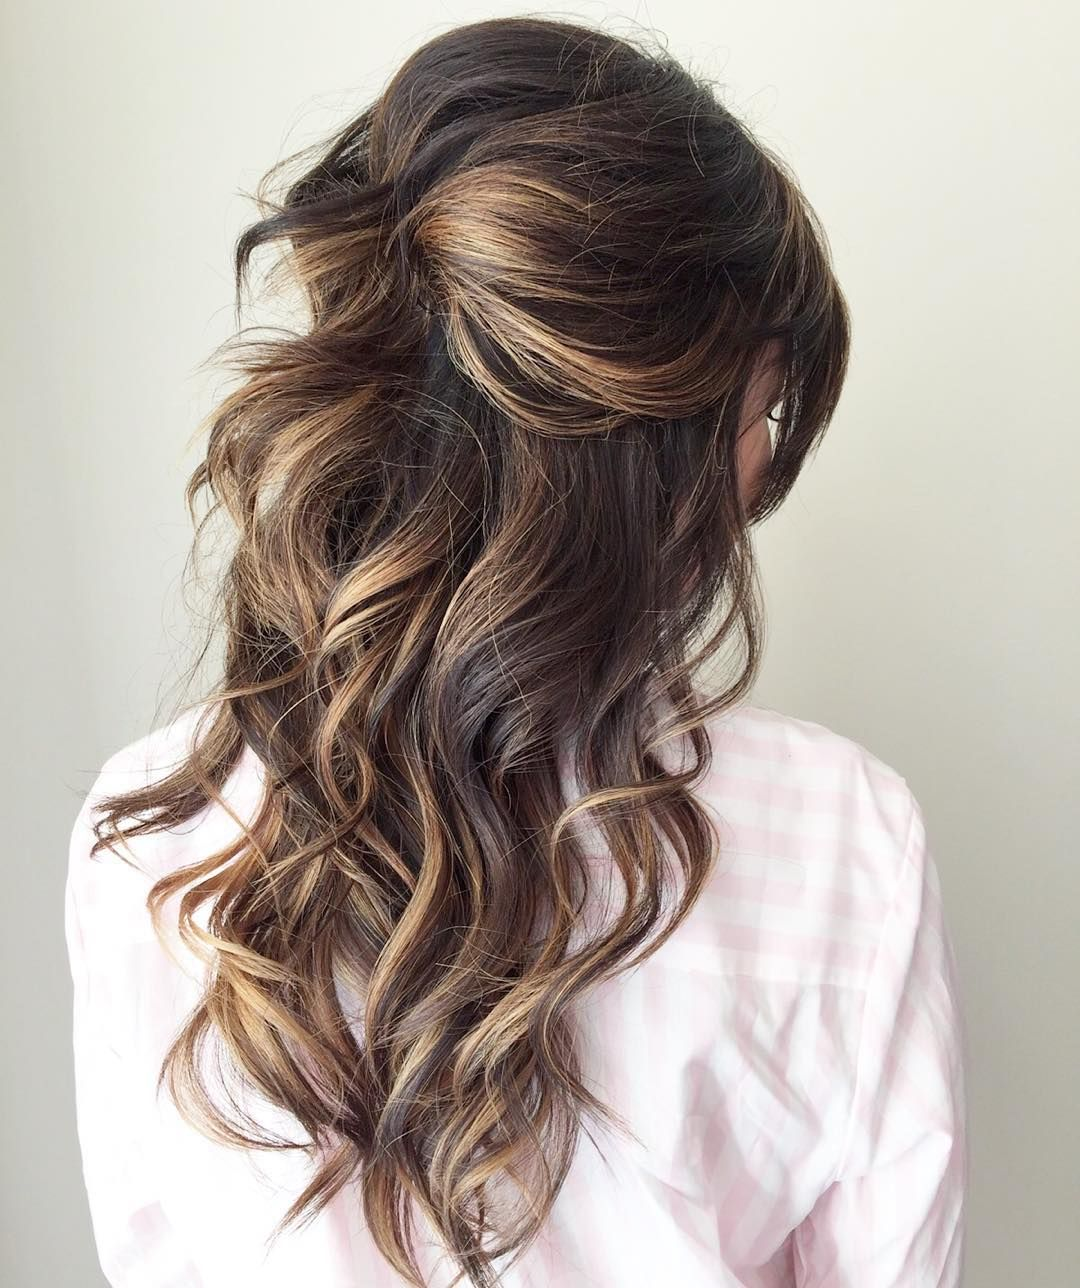 Messy Curls Down Bridesmaid Hairstyles Curly Half Updo